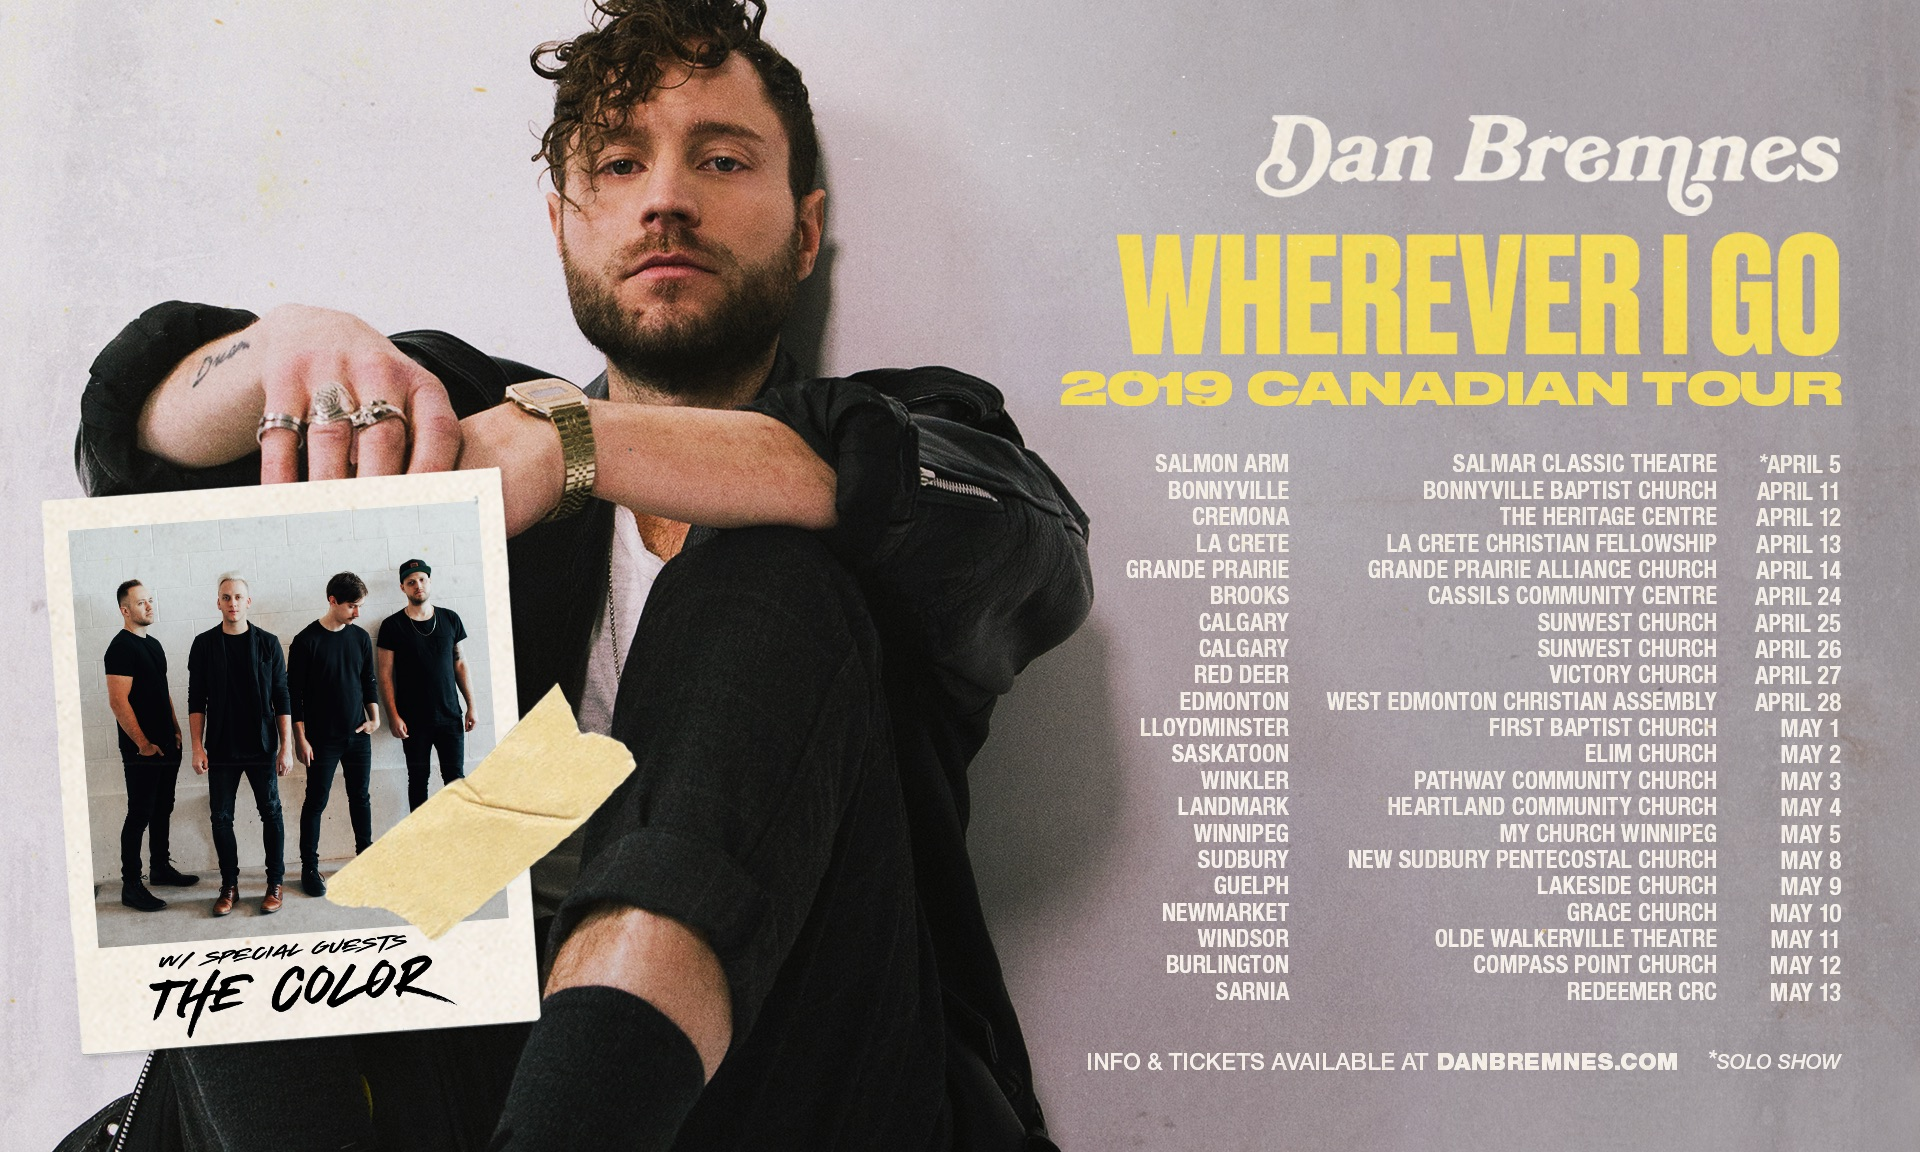 Tickets for Dan Bremnes, Wherever I Go Tour with The Color in Edmonton from BuzzTix